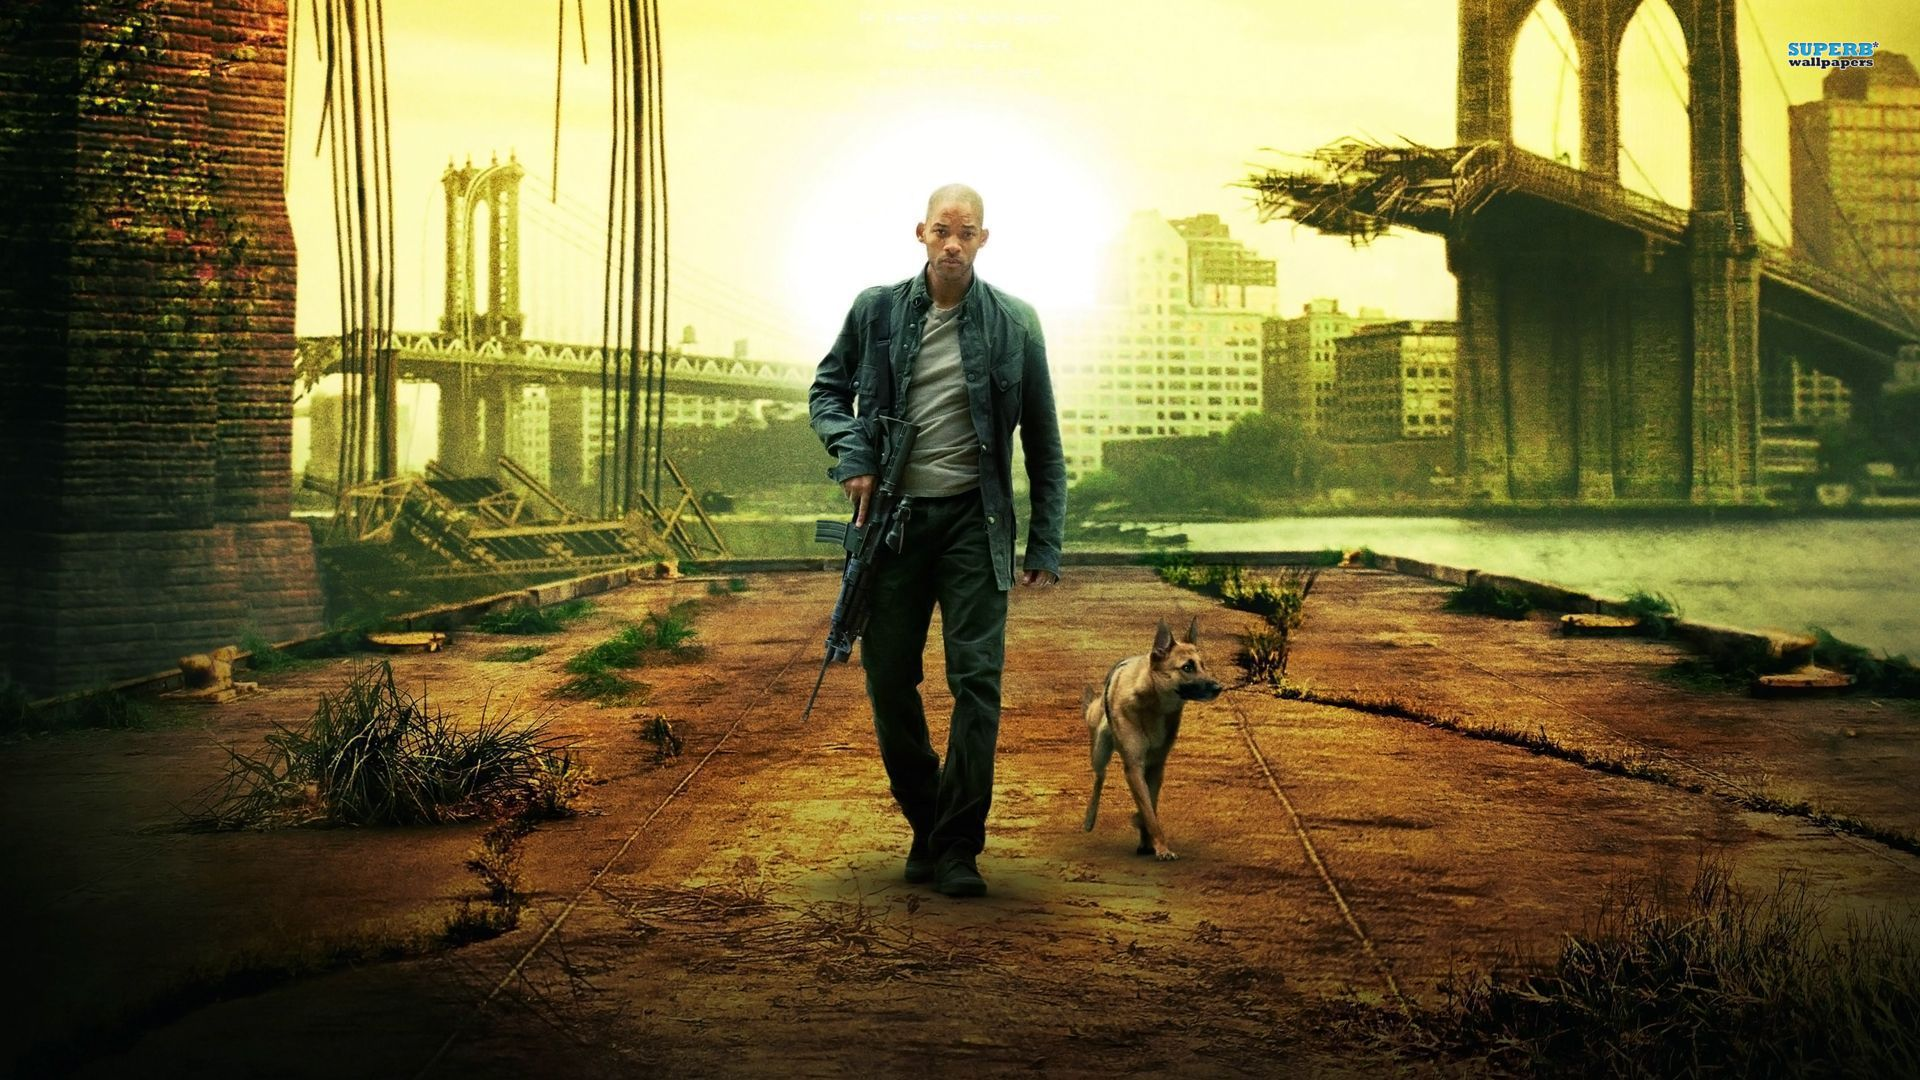 Am Legend Wallpaper 21017   Wallpaperesque 1920x1080